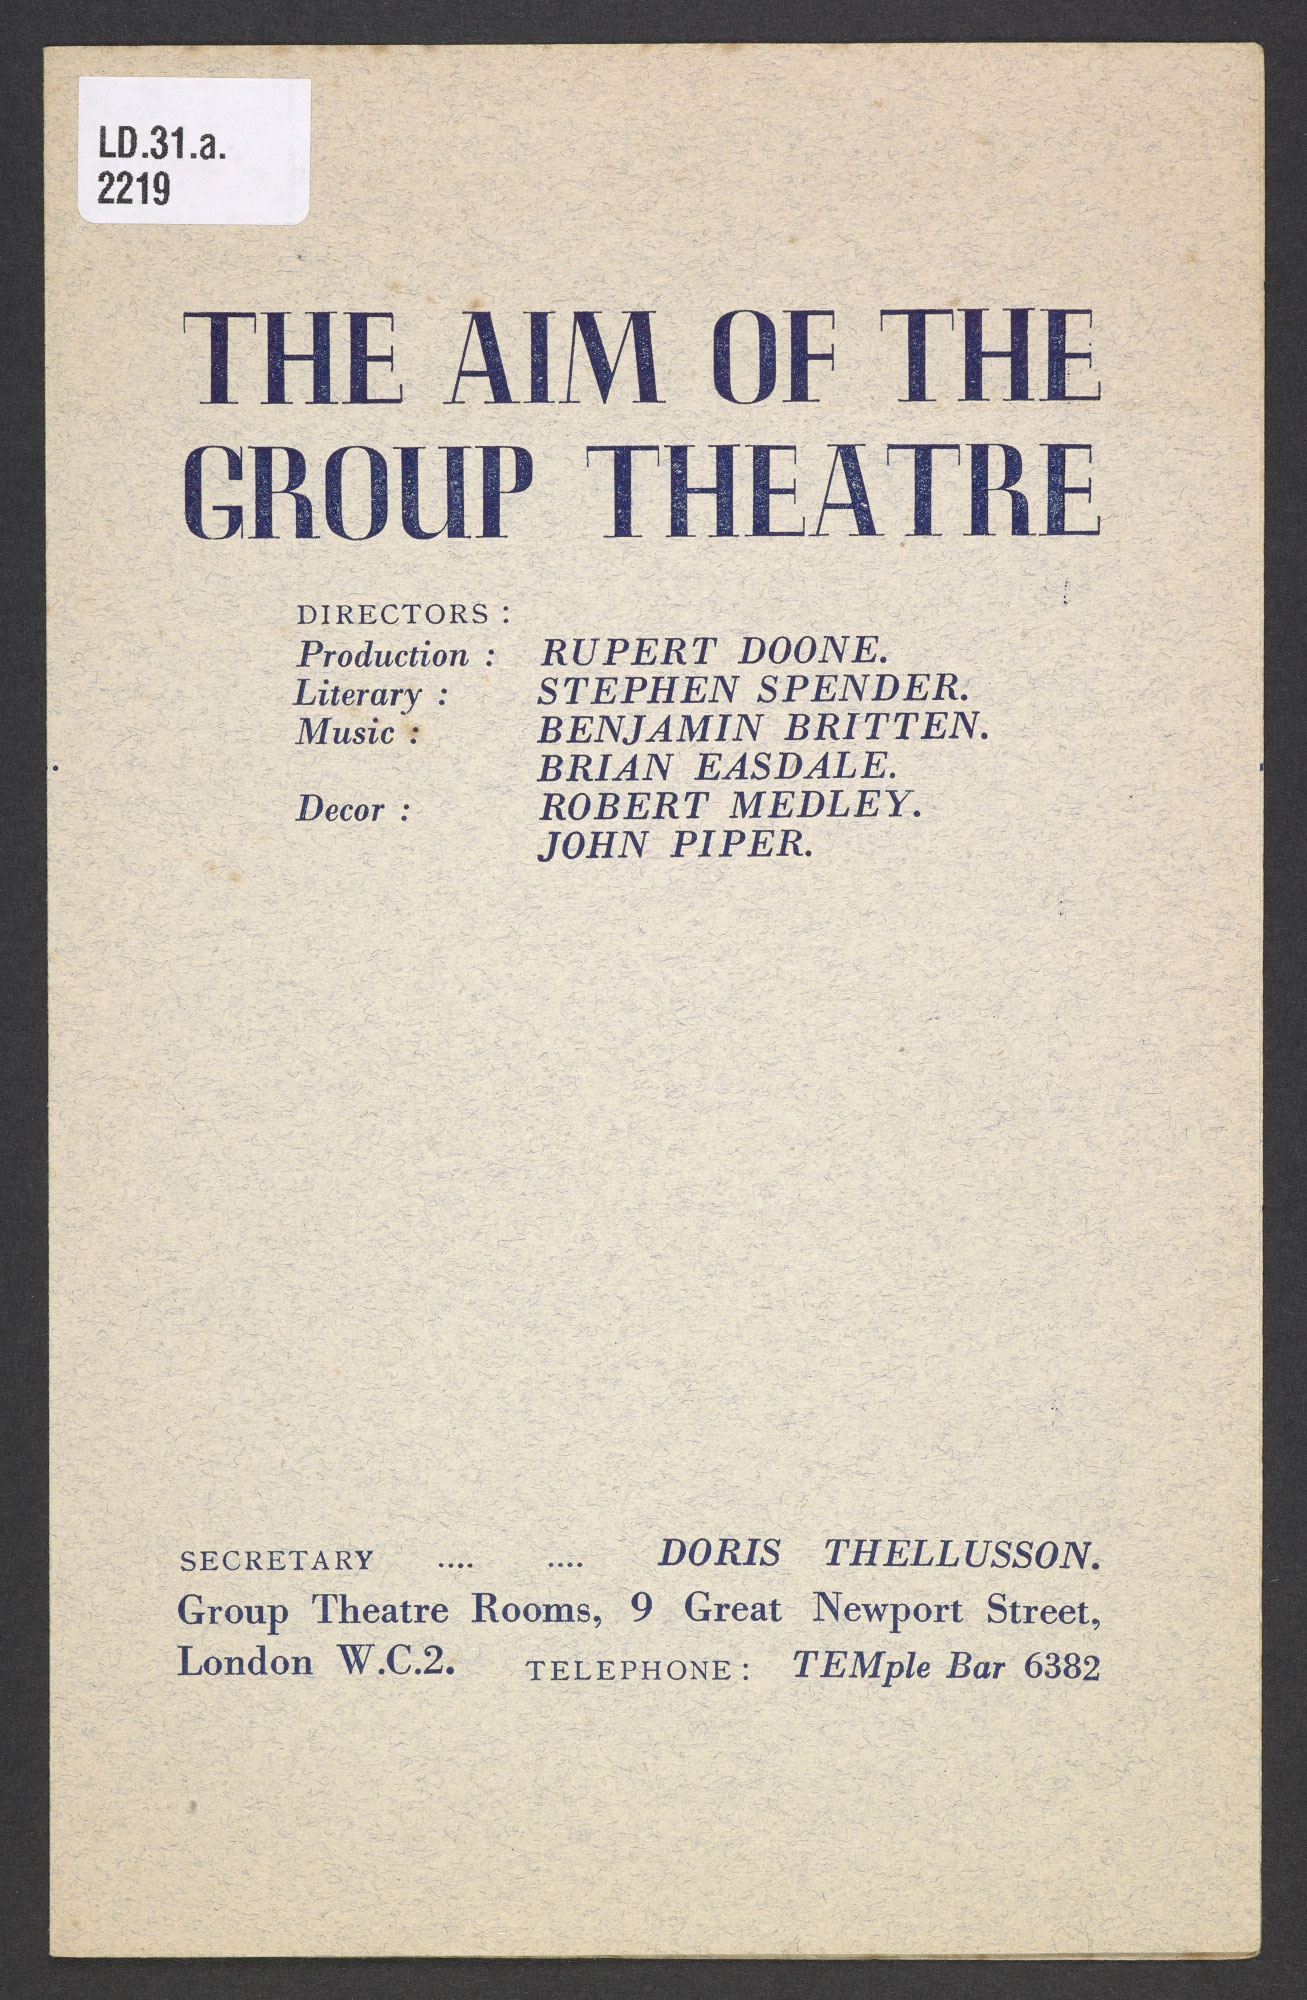 Pamphlet advertising the Group Theatre